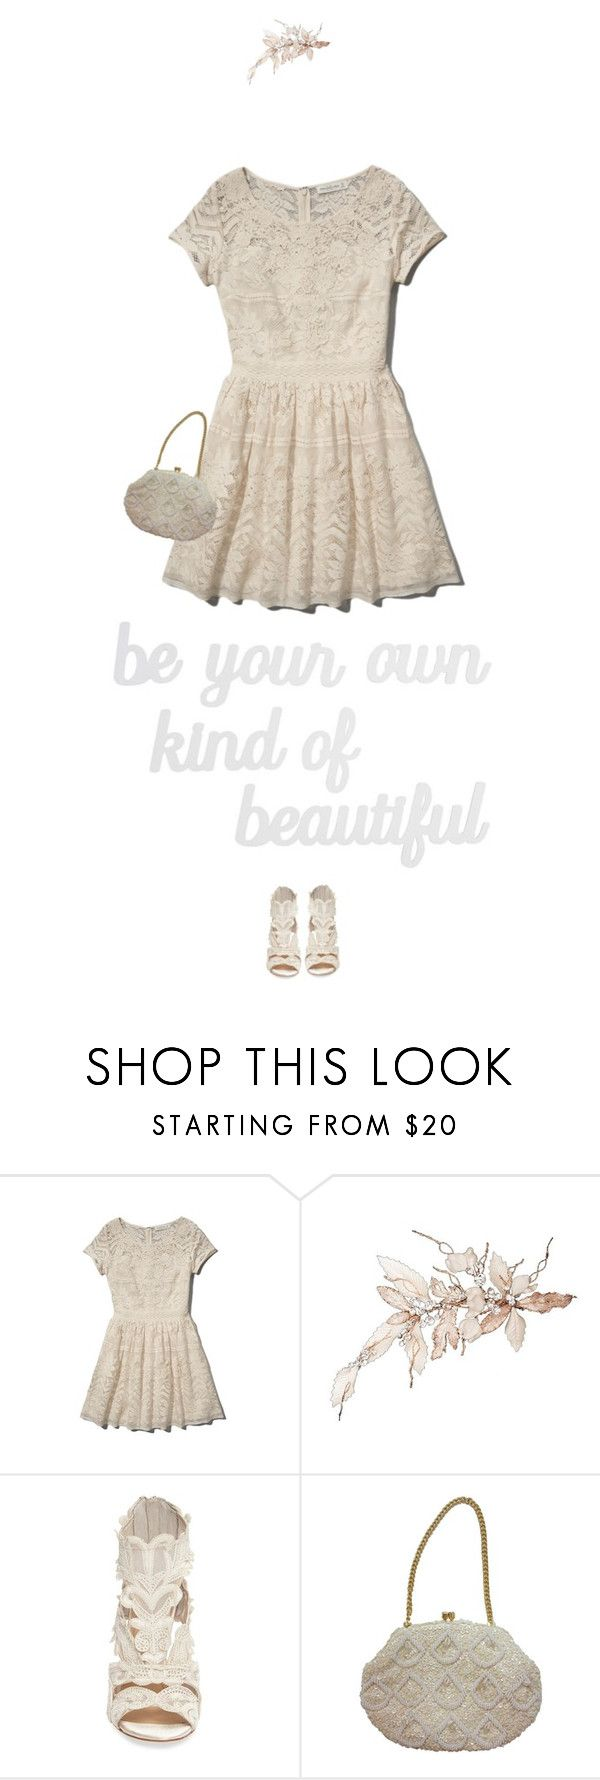 """""""Retro Chick"""" by tubamirum ❤ liked on Polyvore featuring Abercrombie & Fitch, Imagine by Vince Camuto and PBteen"""